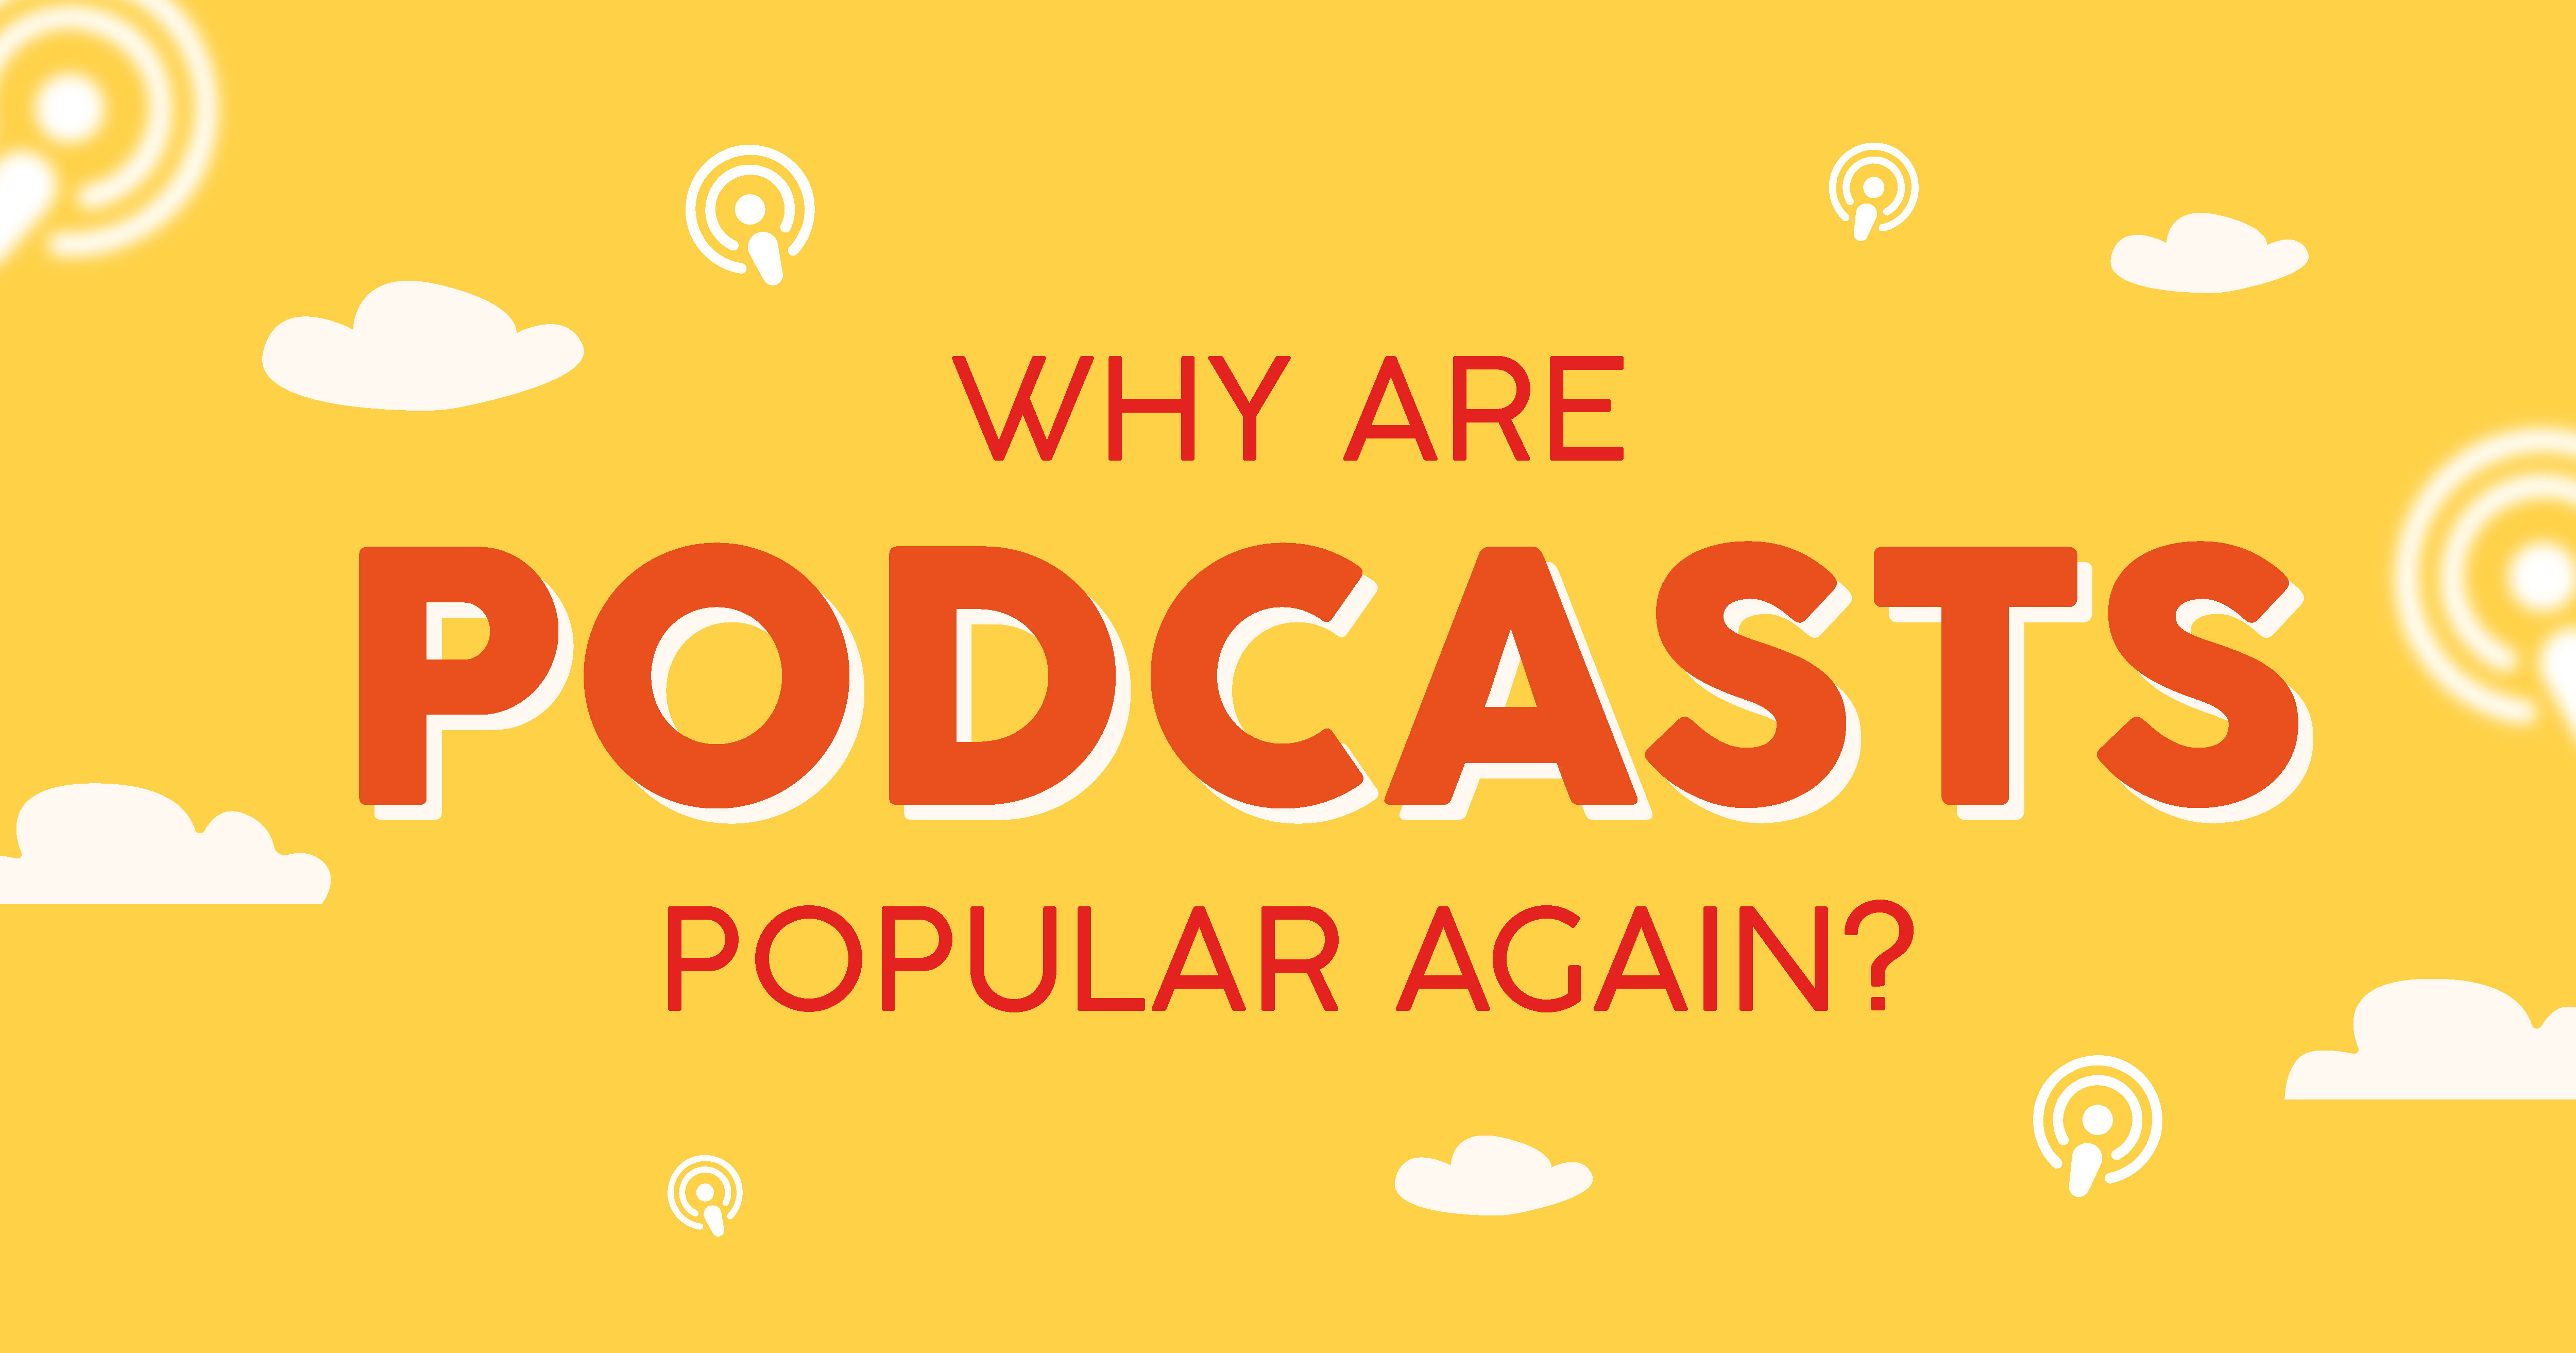 Why Are Podcasts Popular Again